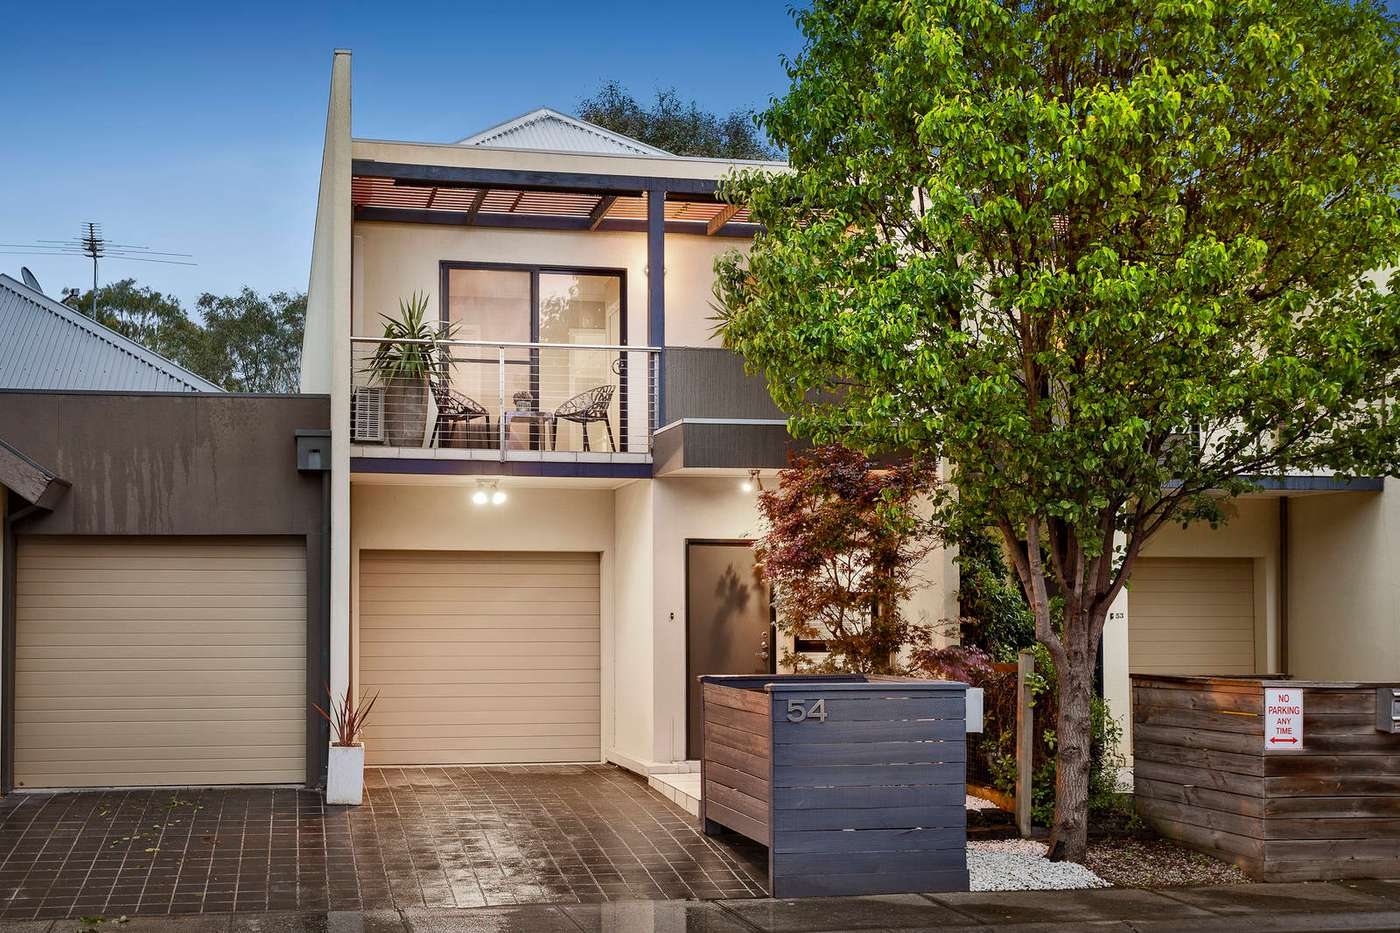 Main view of Homely house listing, 54/124-136 Mason Street, Newport, VIC 3015